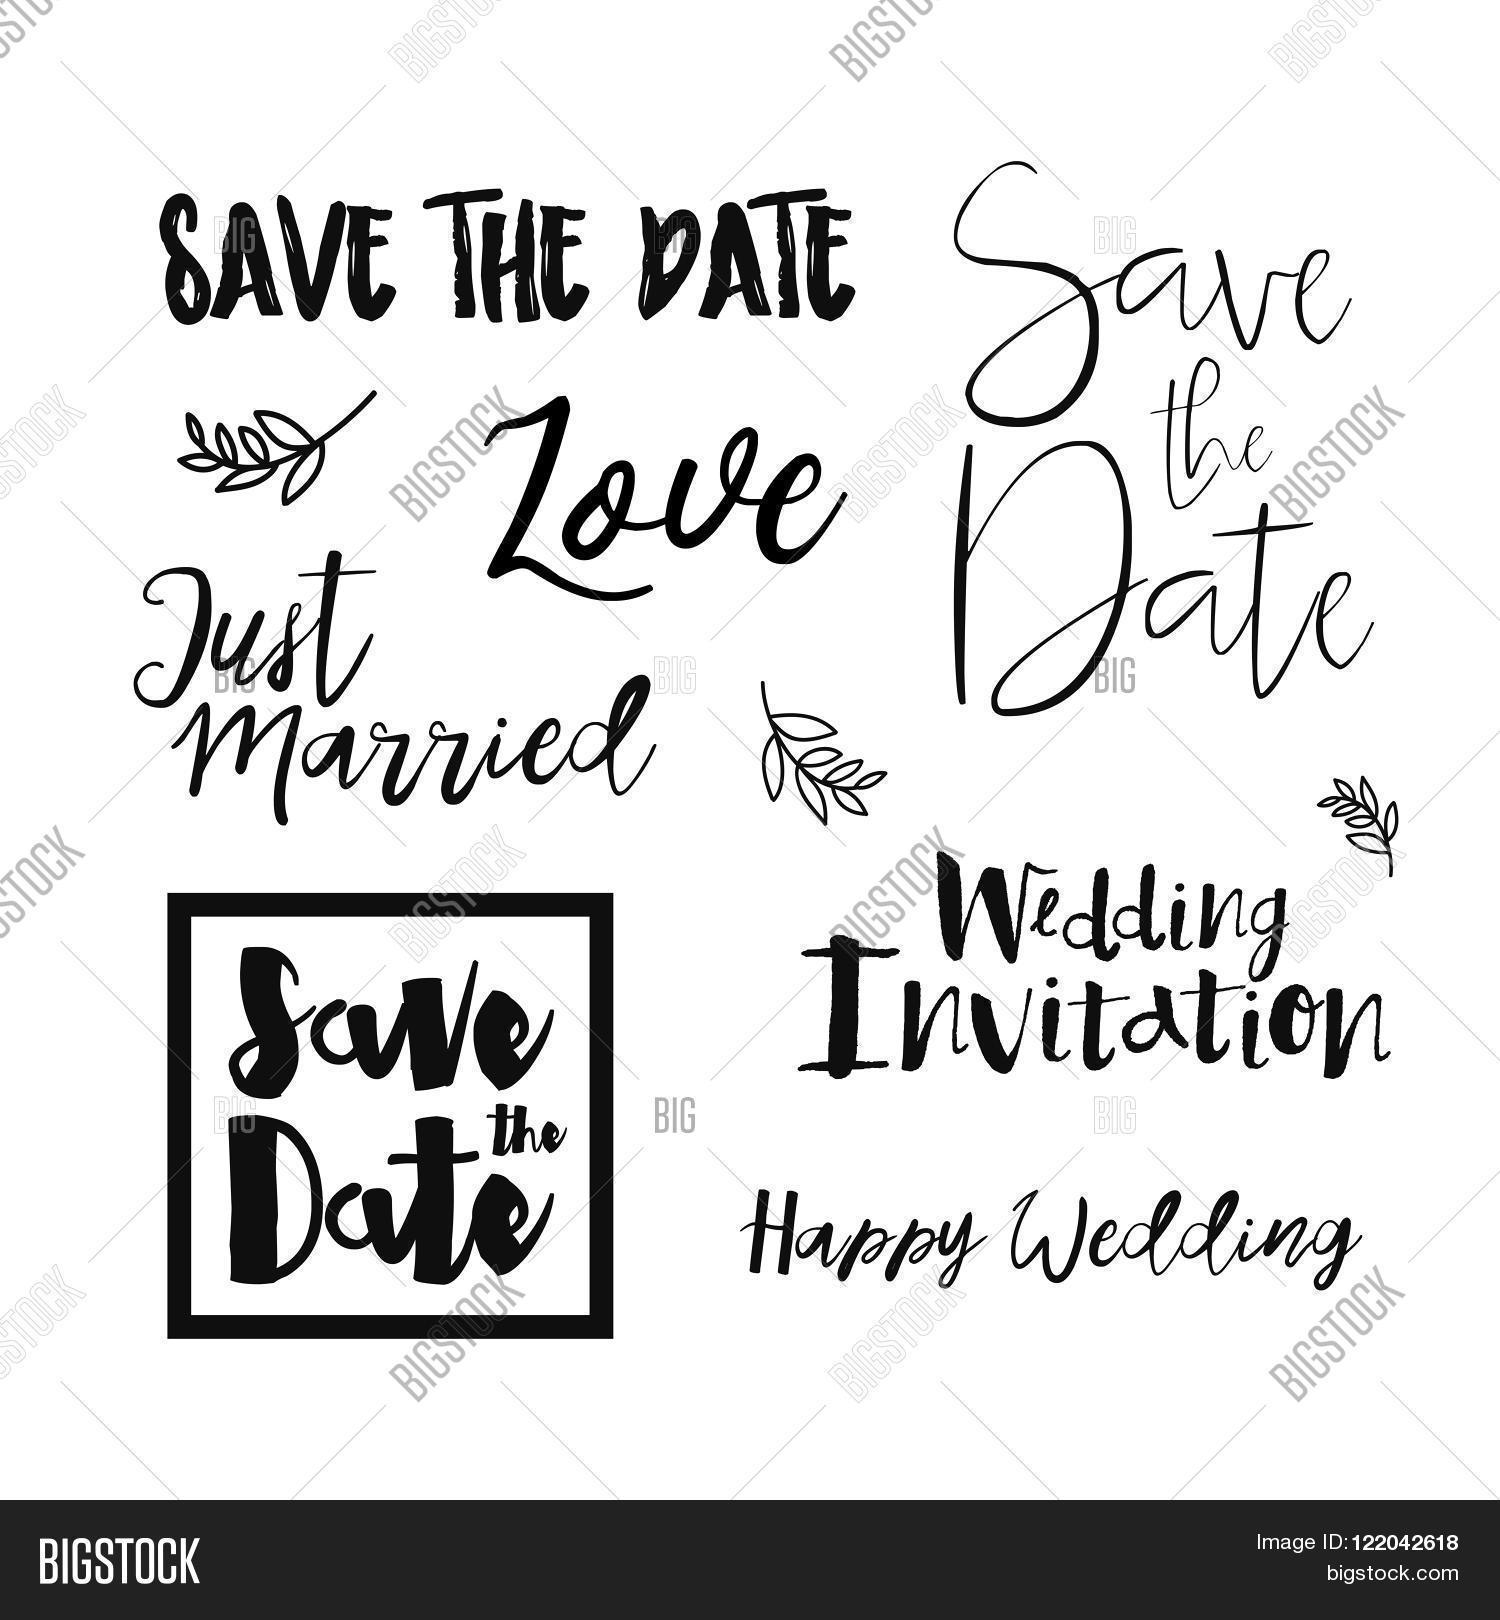 Save Date Wedding Vector Photo Free Trial Bigstock - Save the date text template